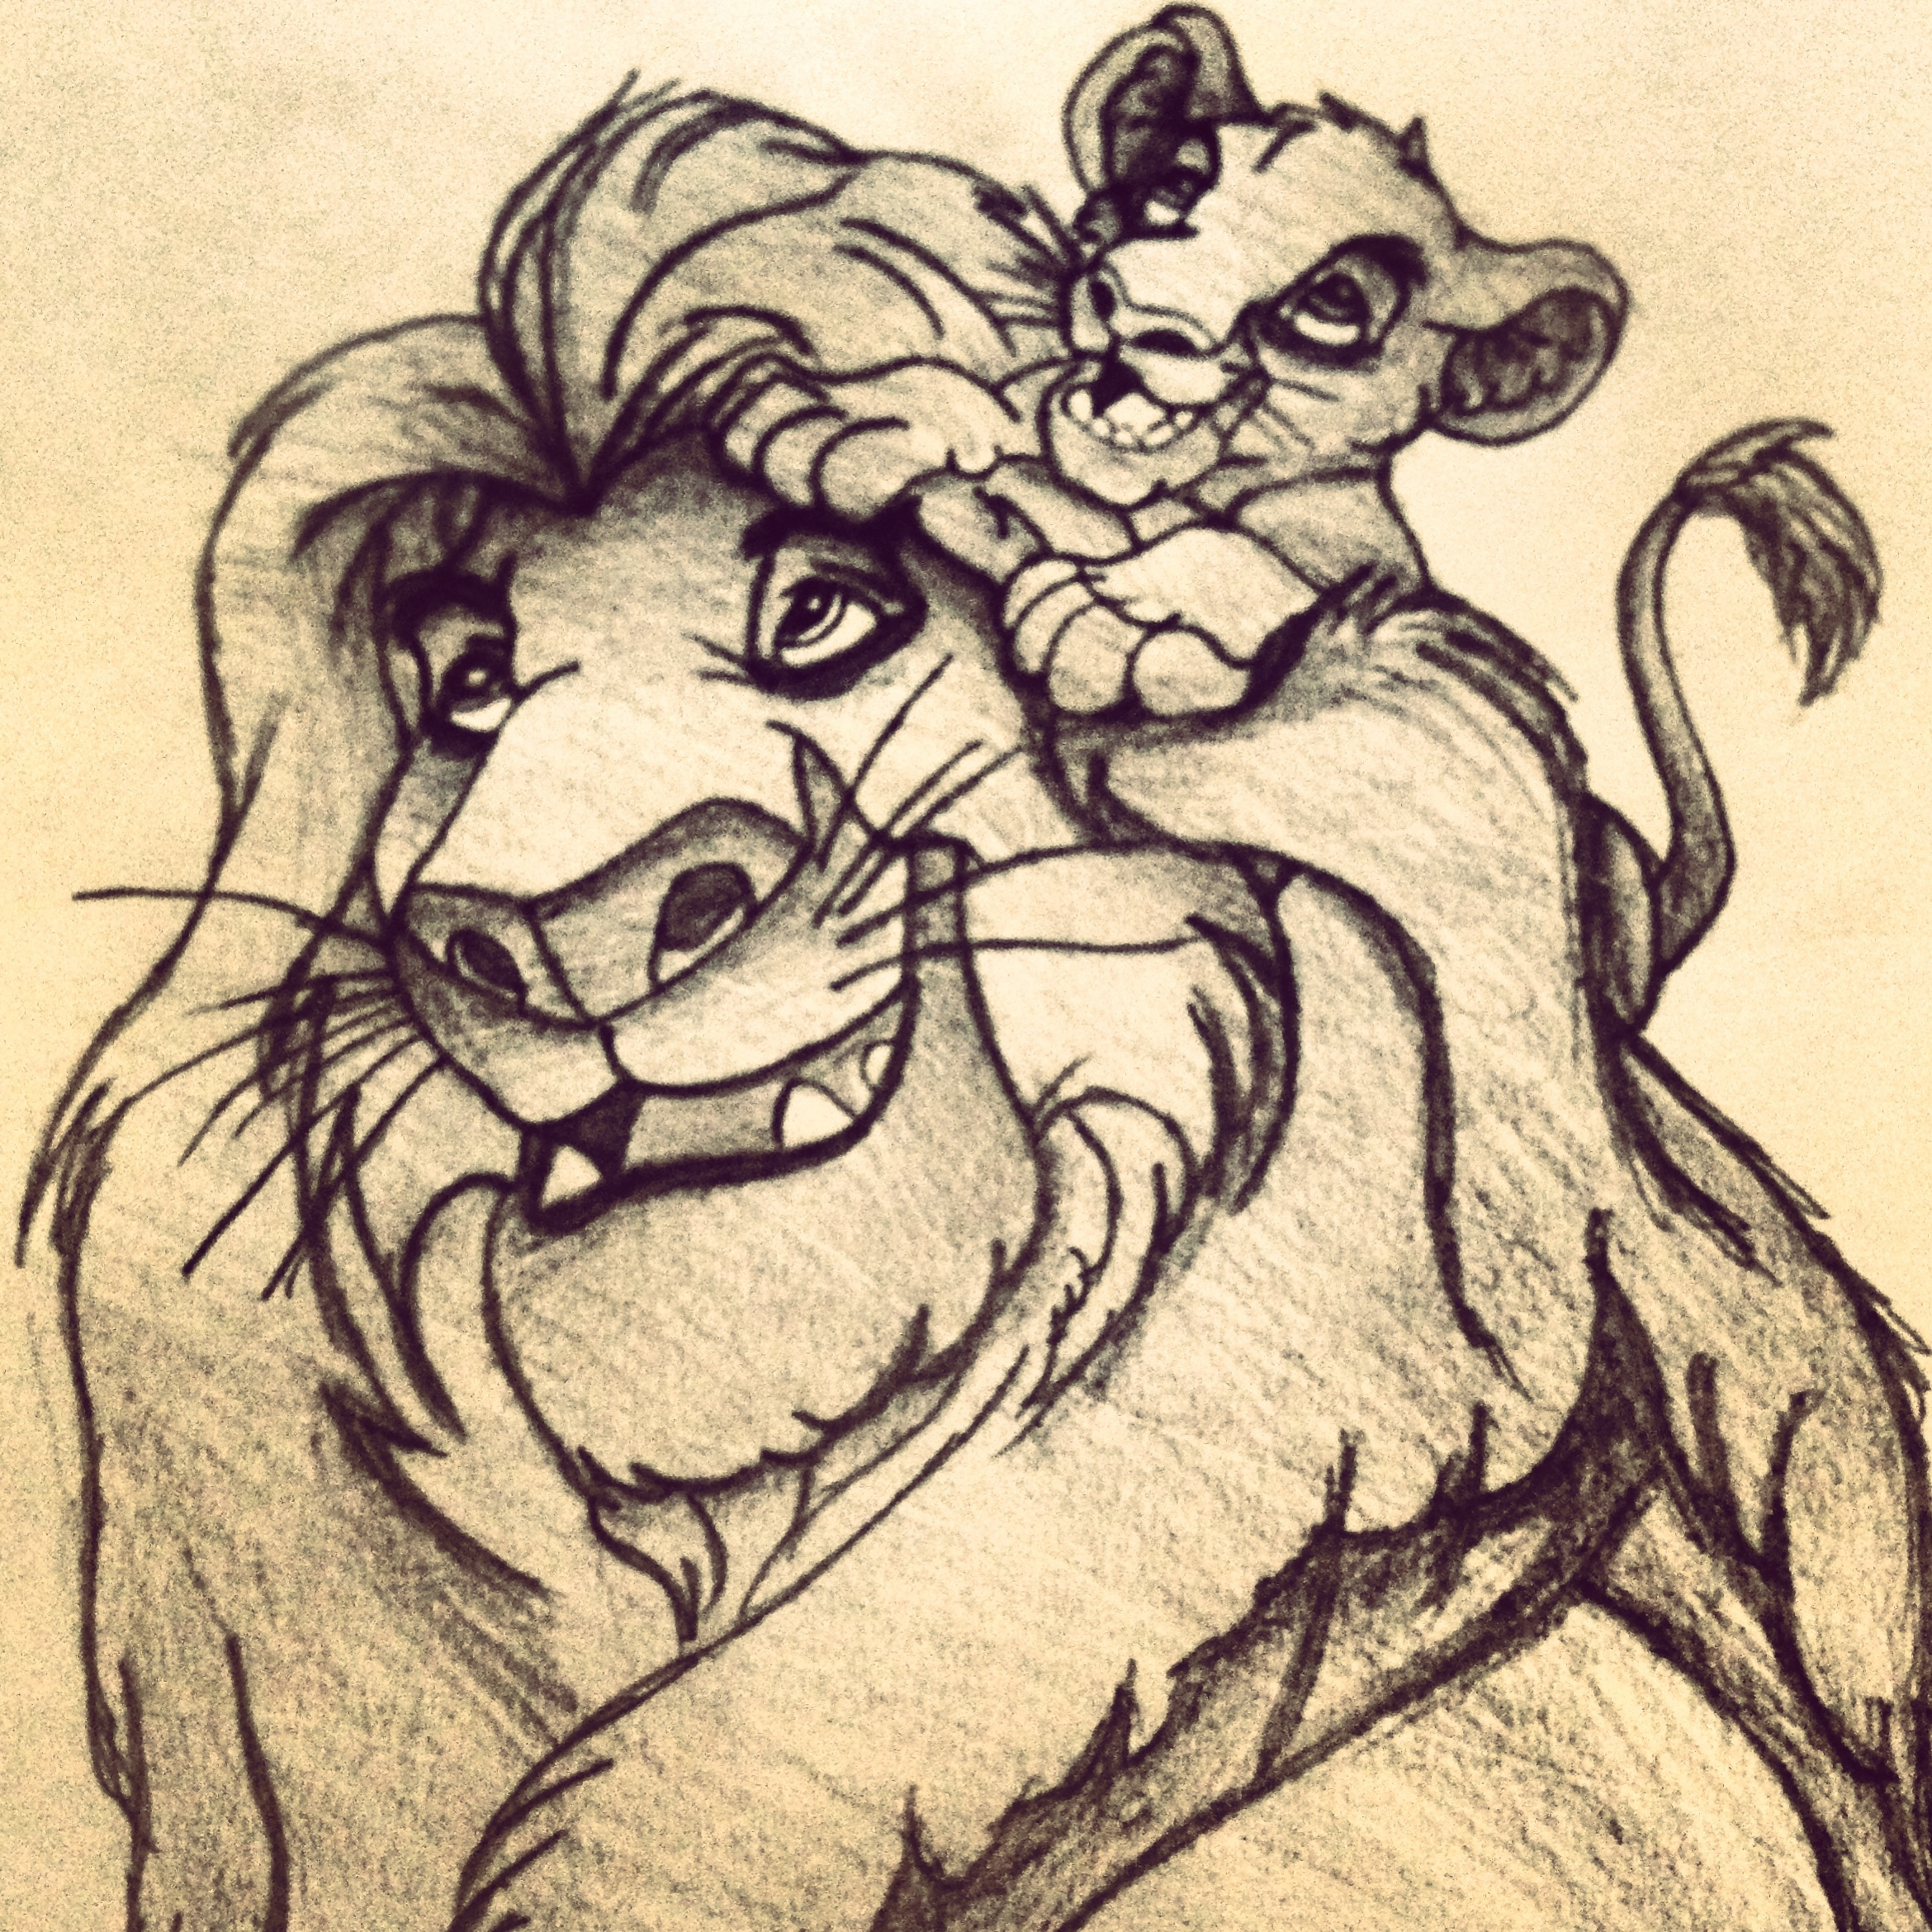 Lion king pencil drawing at free for personal use lion king pencil drawing of - Dessin triste ...